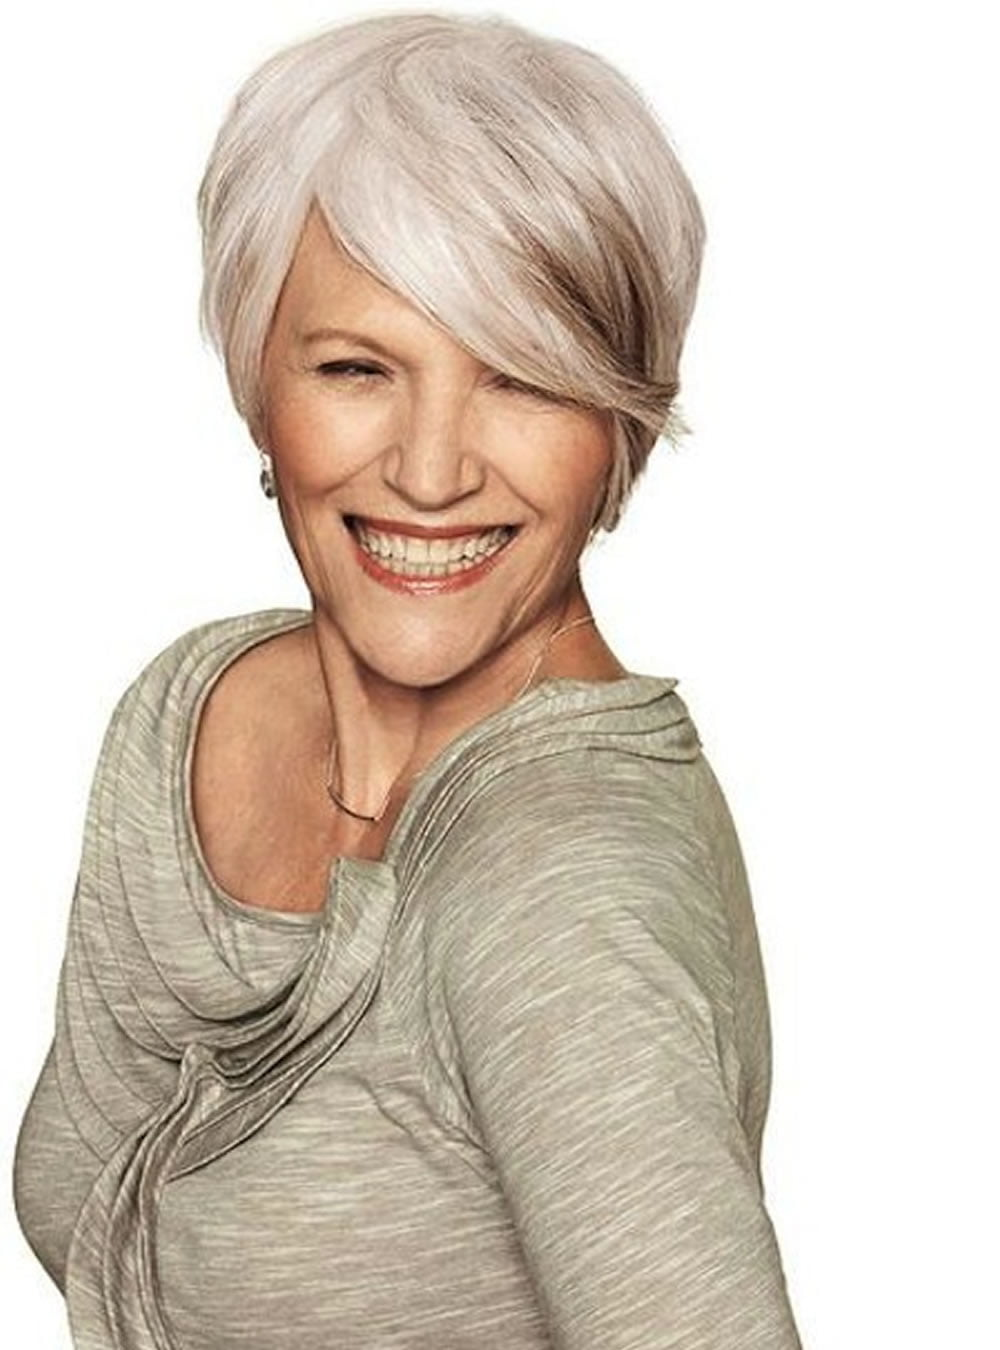 hairstyles over 50 on pinterest short hairstyles for pixie short haircuts for older women over 50 2018 2019